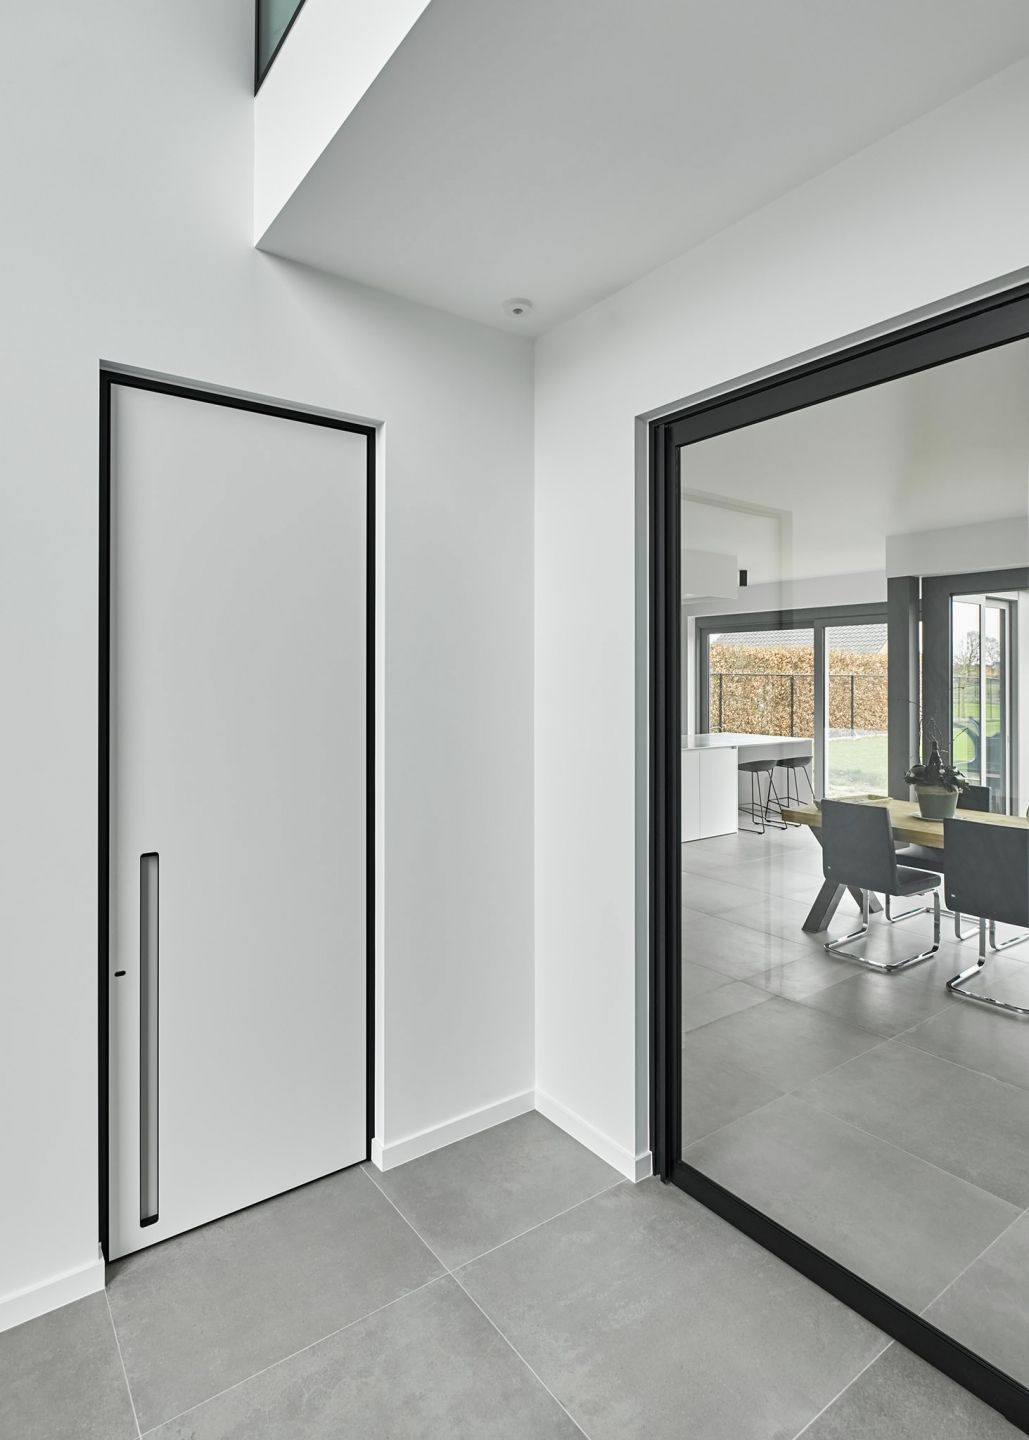 Modern White Interior Door With A Black Door Frame And A Built In